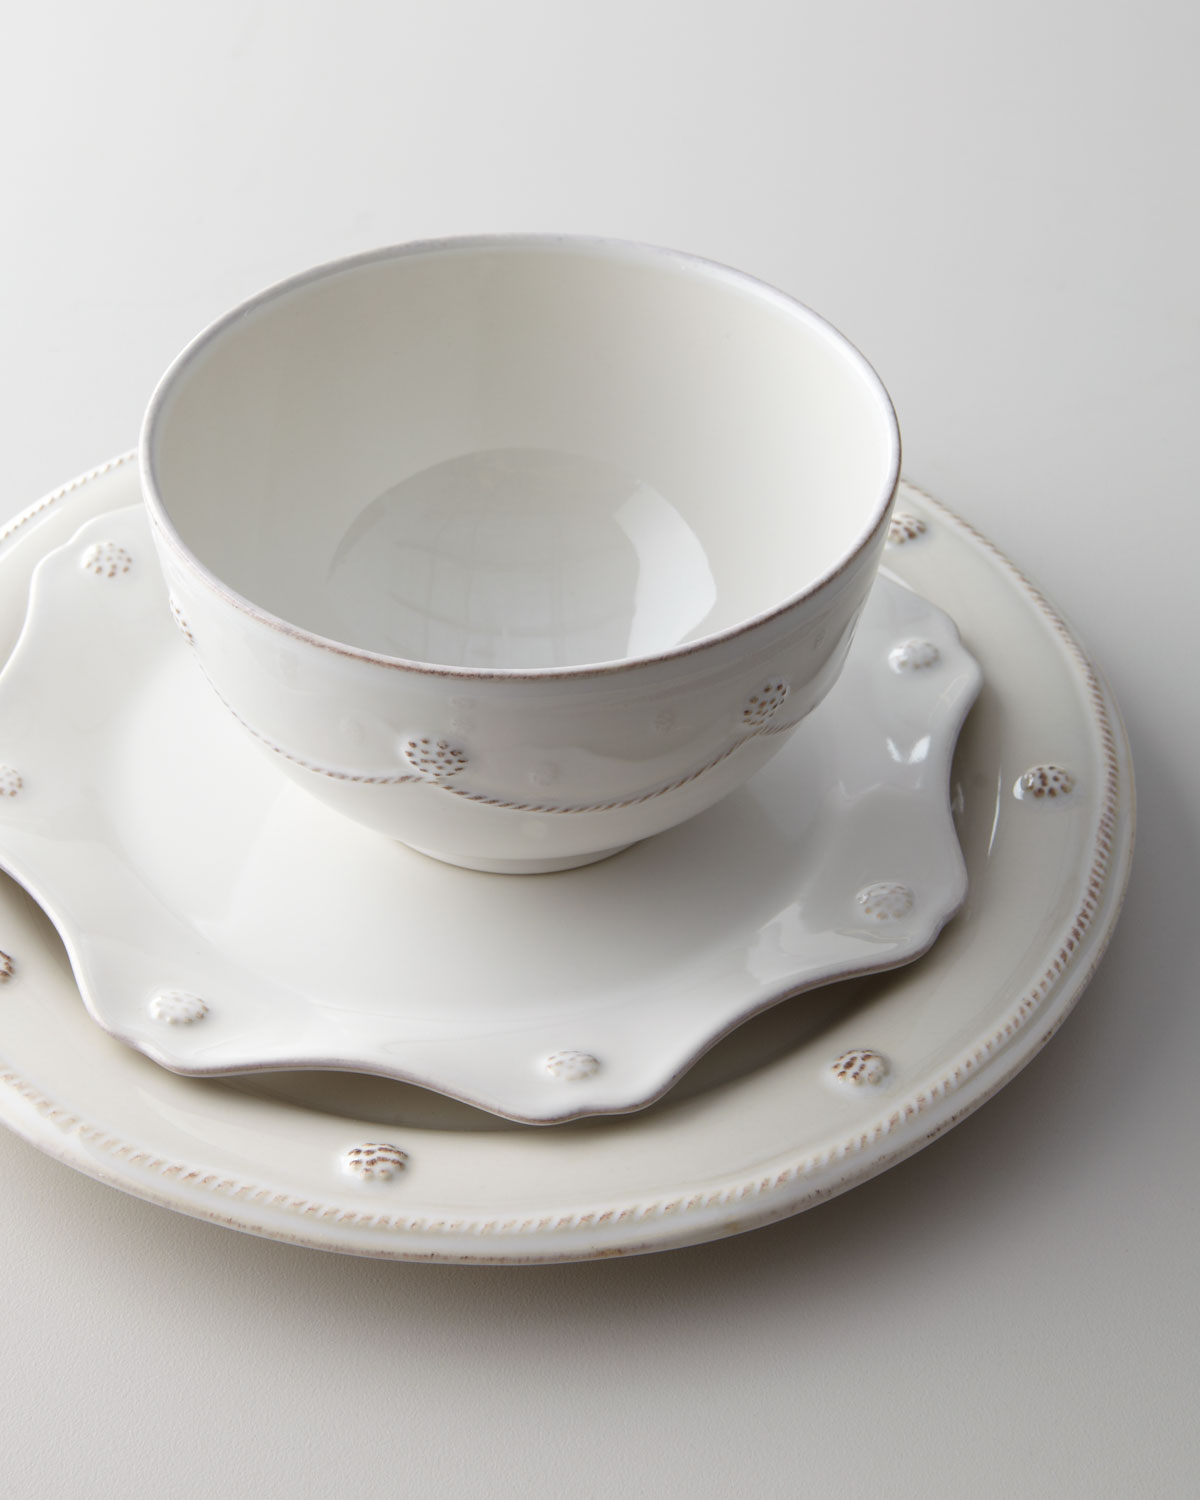 Berry u0026 Thread Whitewash Dinner Plate : dinner plate storage containers - Pezcame.Com